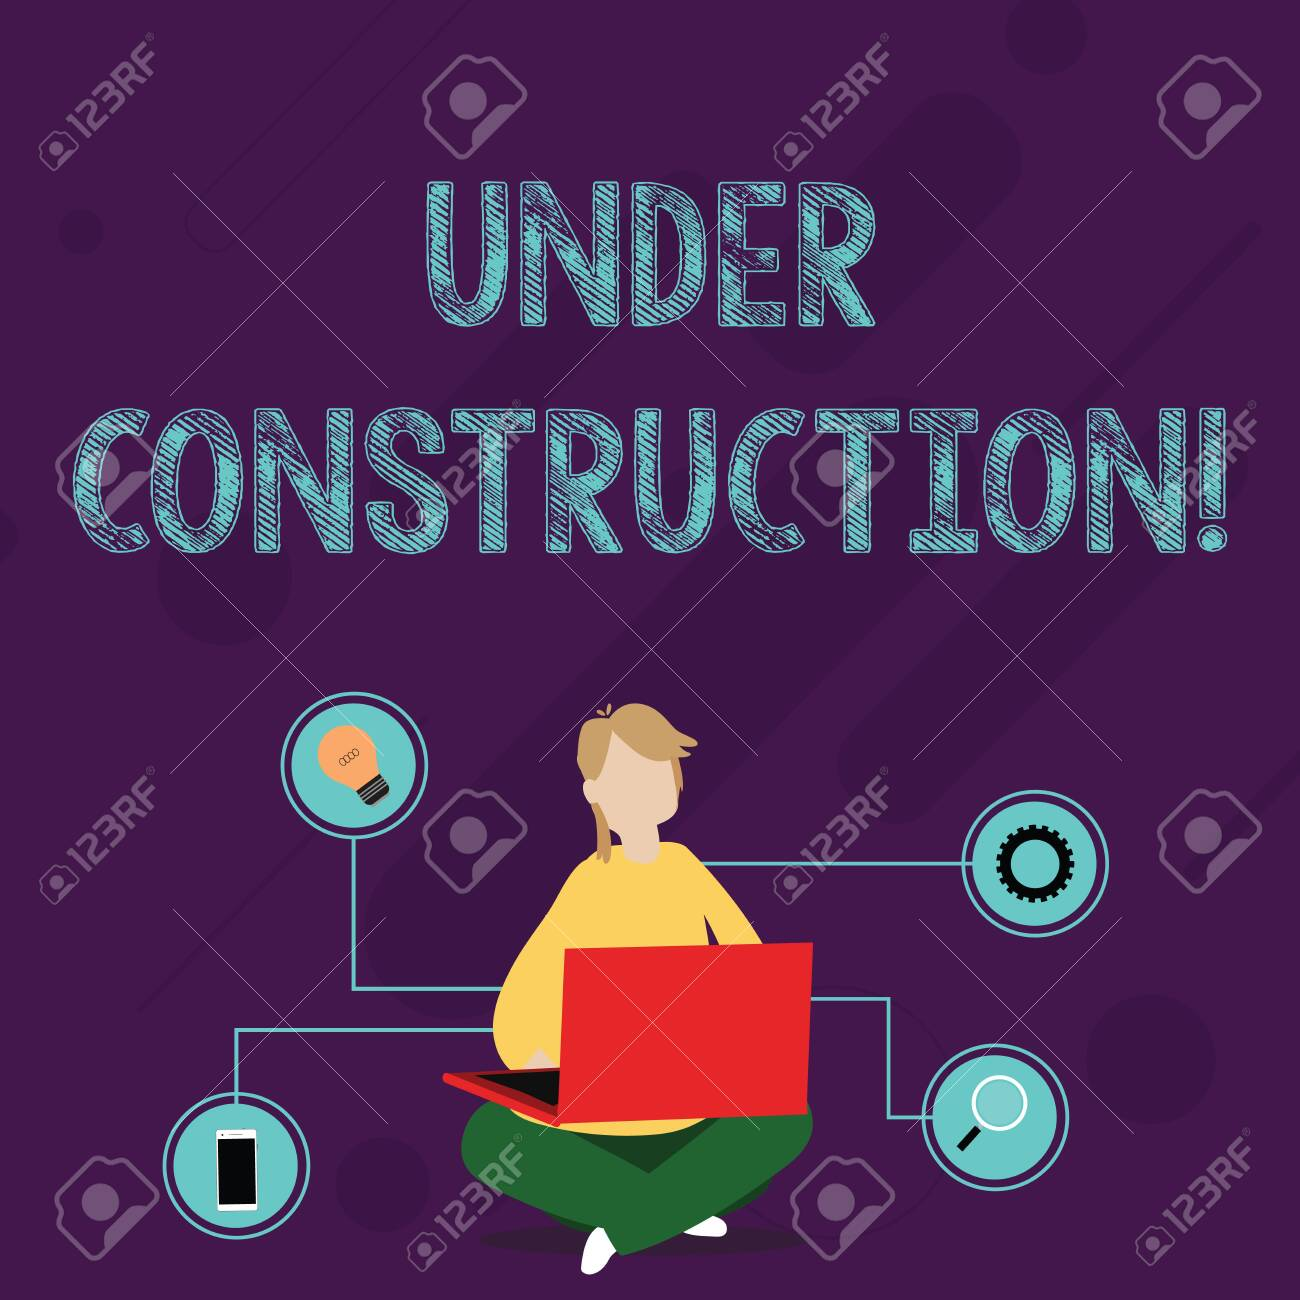 Writing note showing Under Construction. Business concept for project that is unfinished but actively being worked on Woman Sitting with Crossed Legs on Floor Browsing the Laptop - 122063357